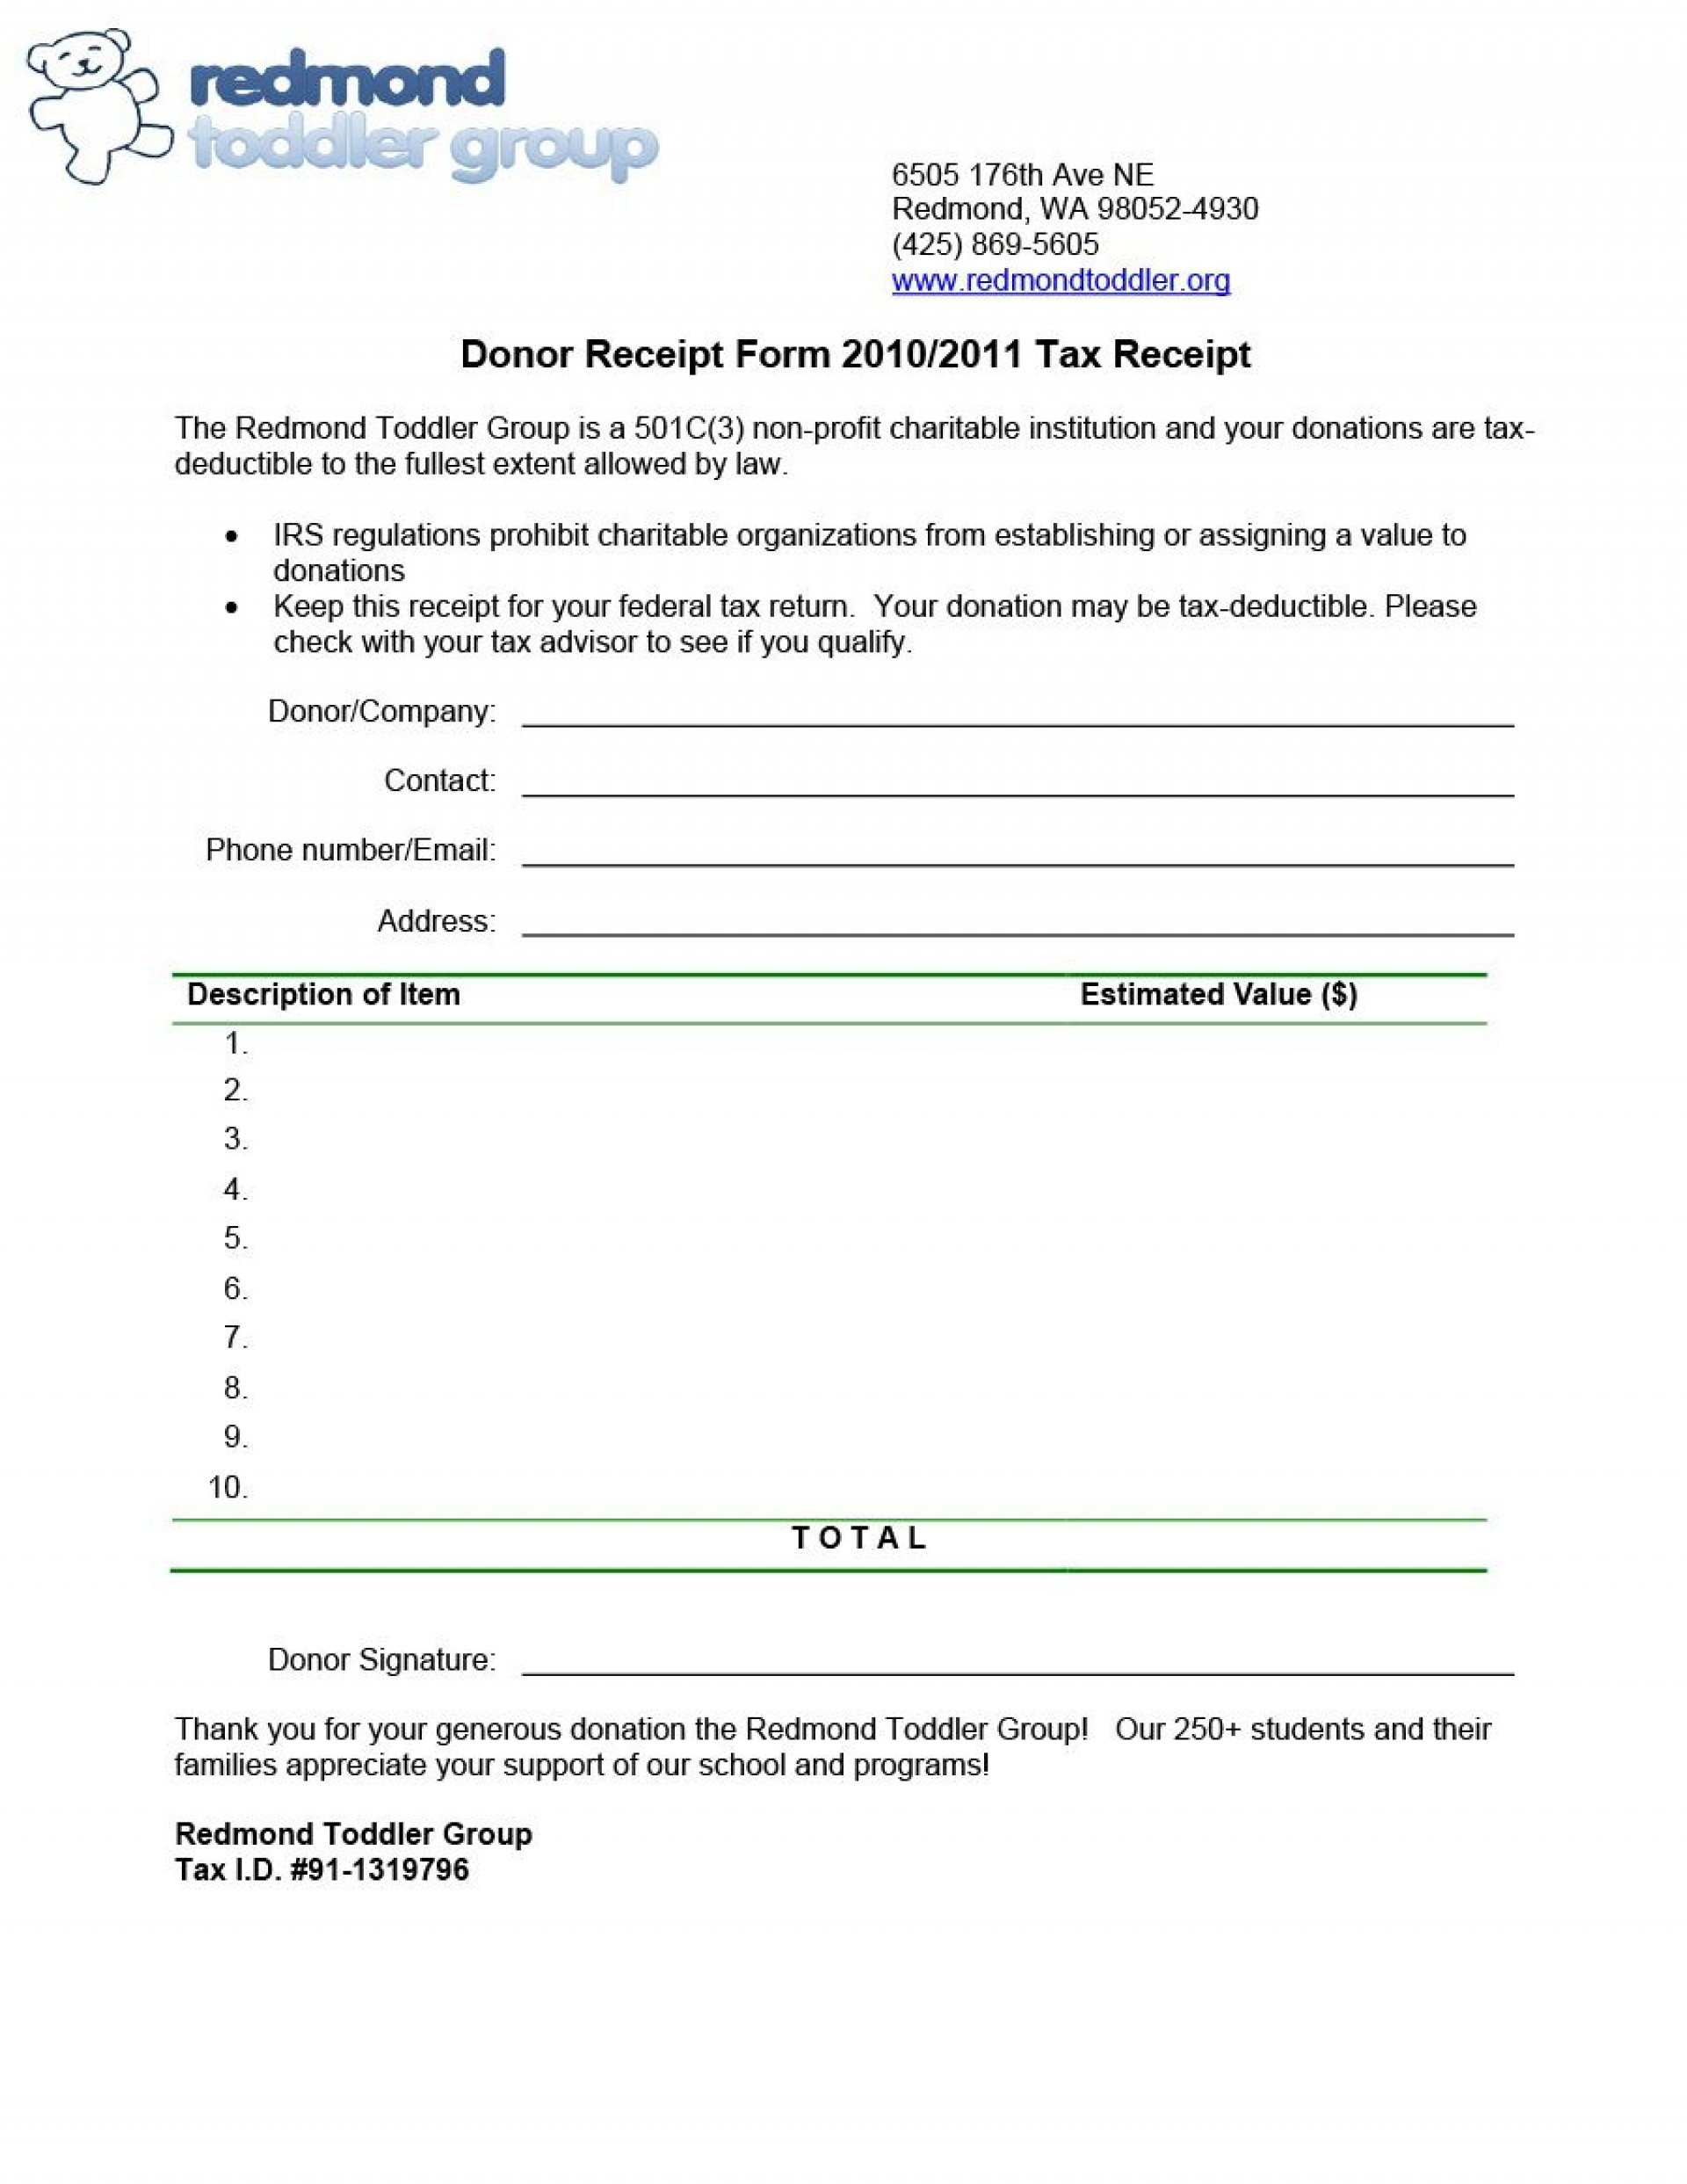 006 Breathtaking Charitable Contribution Receipt Example Design  Donation Tax Template Sample Letter1920